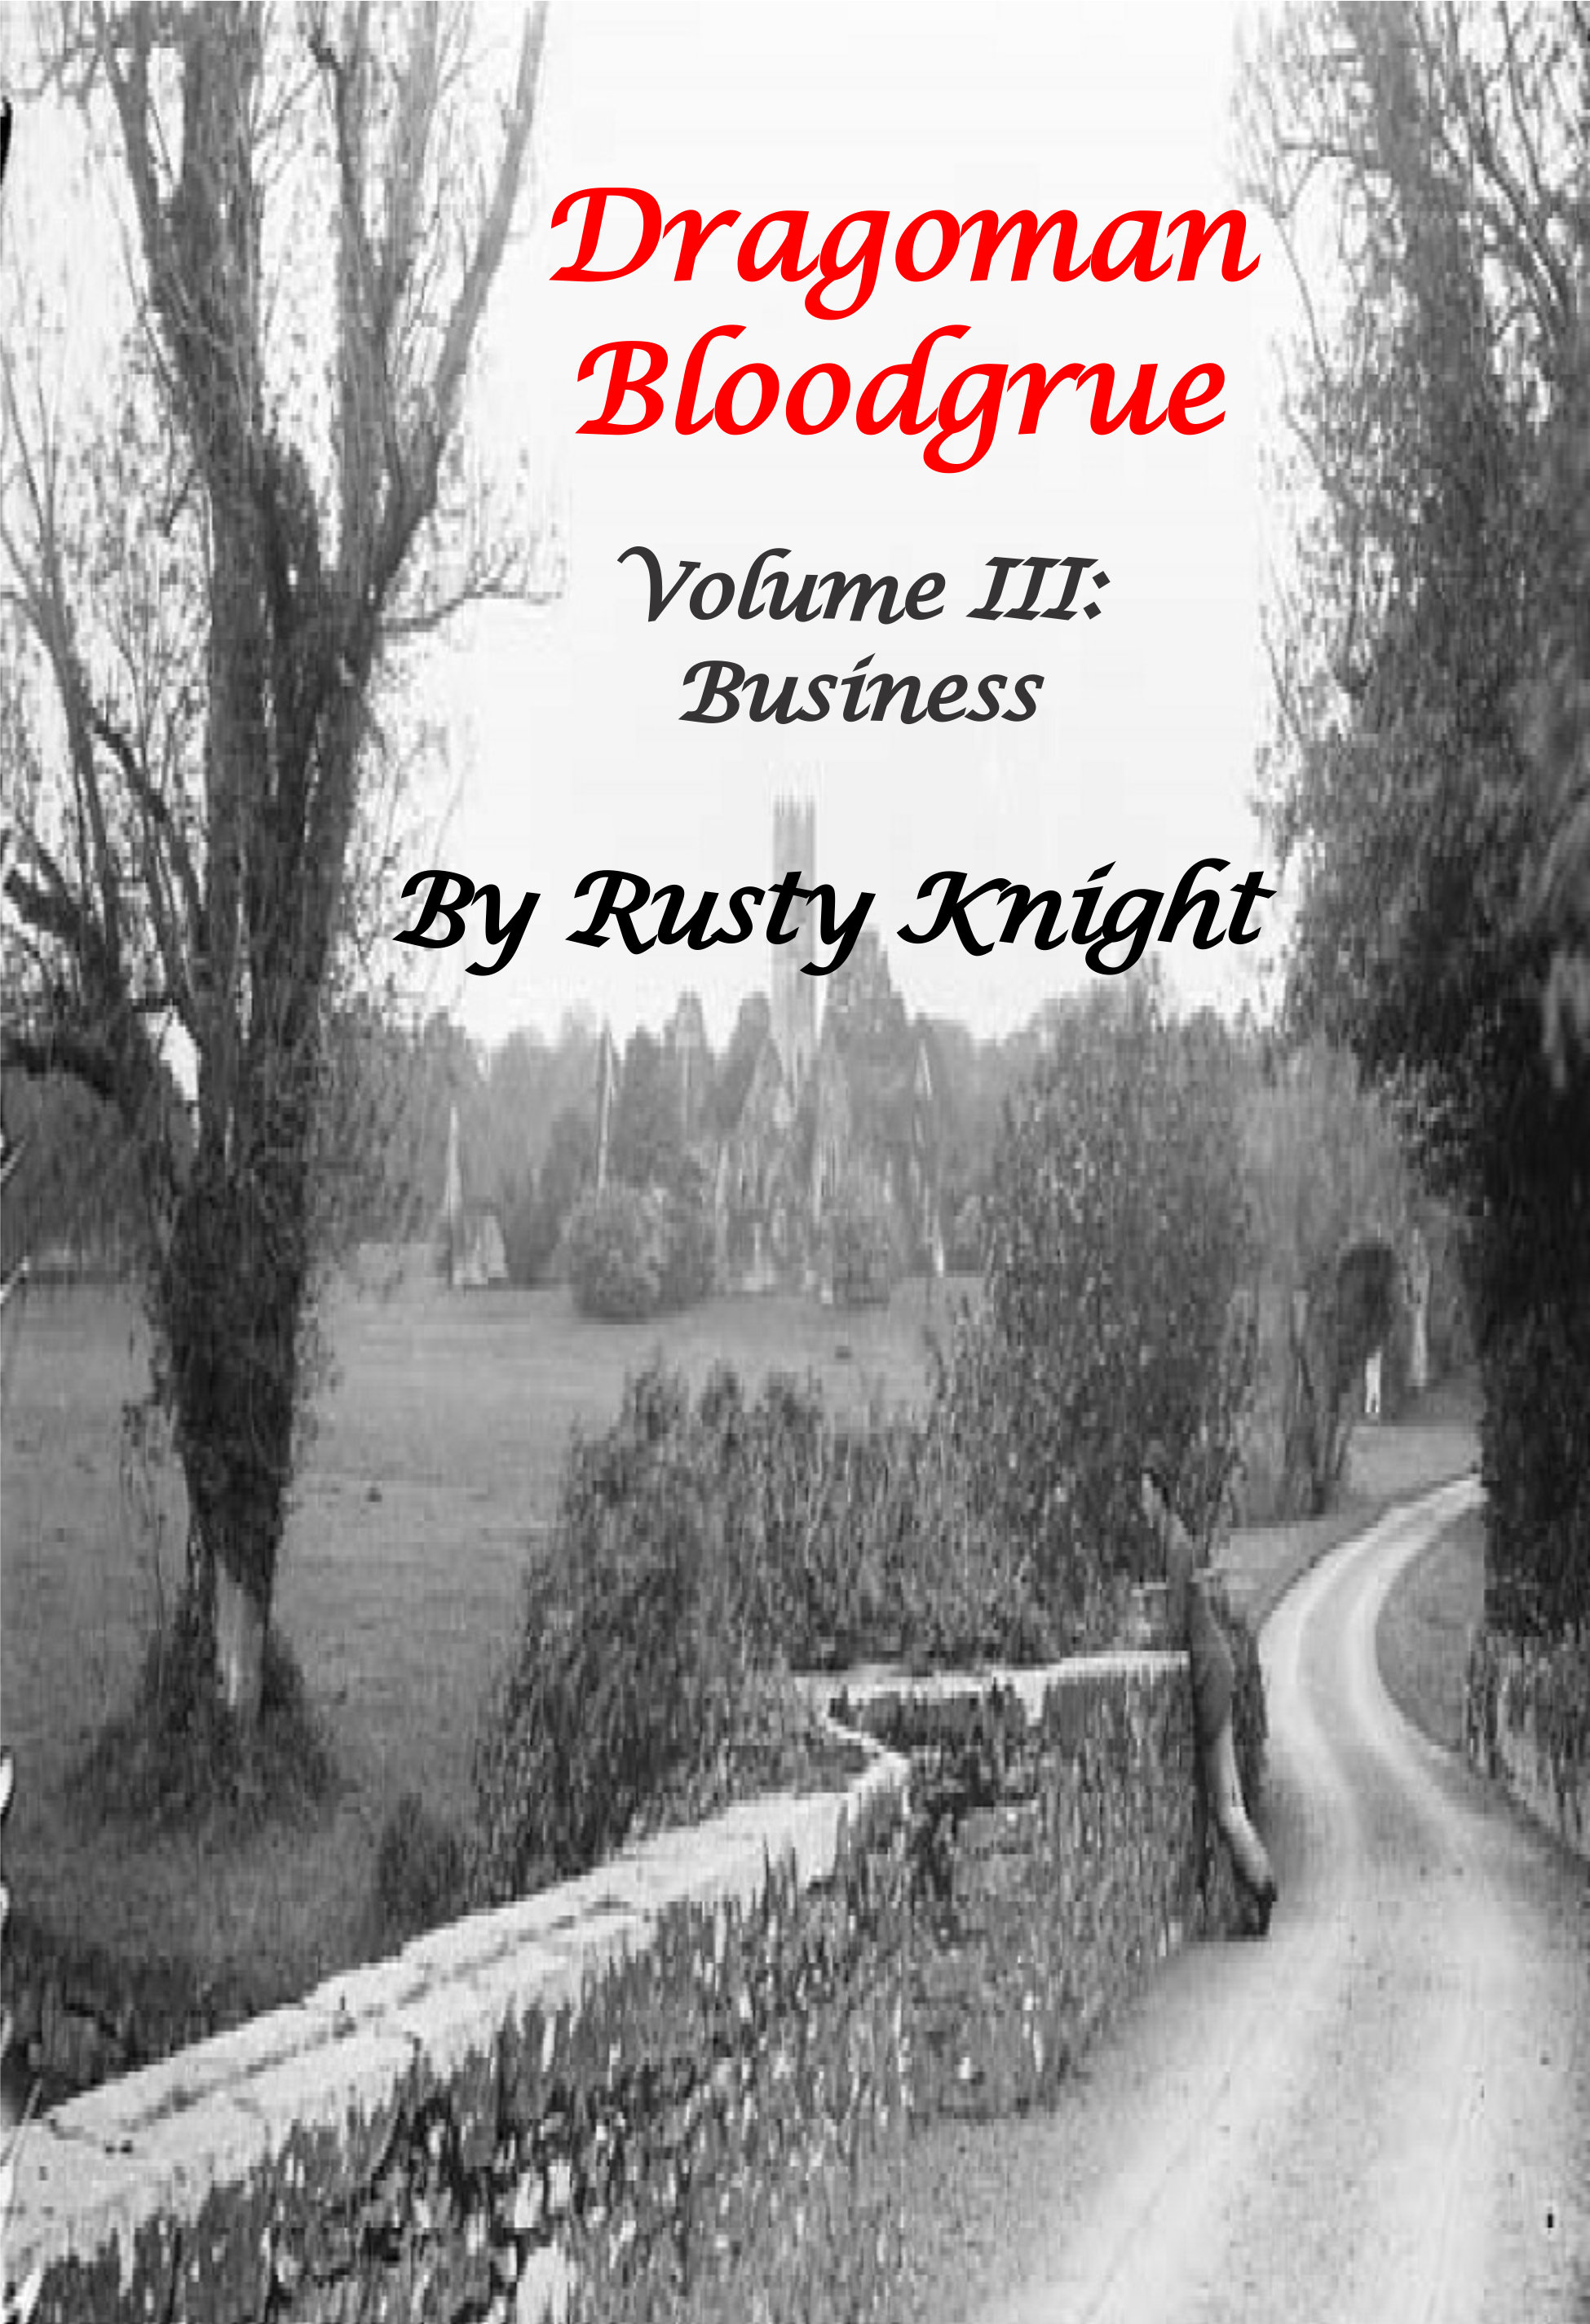 Dragoman Bloodgrue Volume III, Business, e-copy DB17DCV003